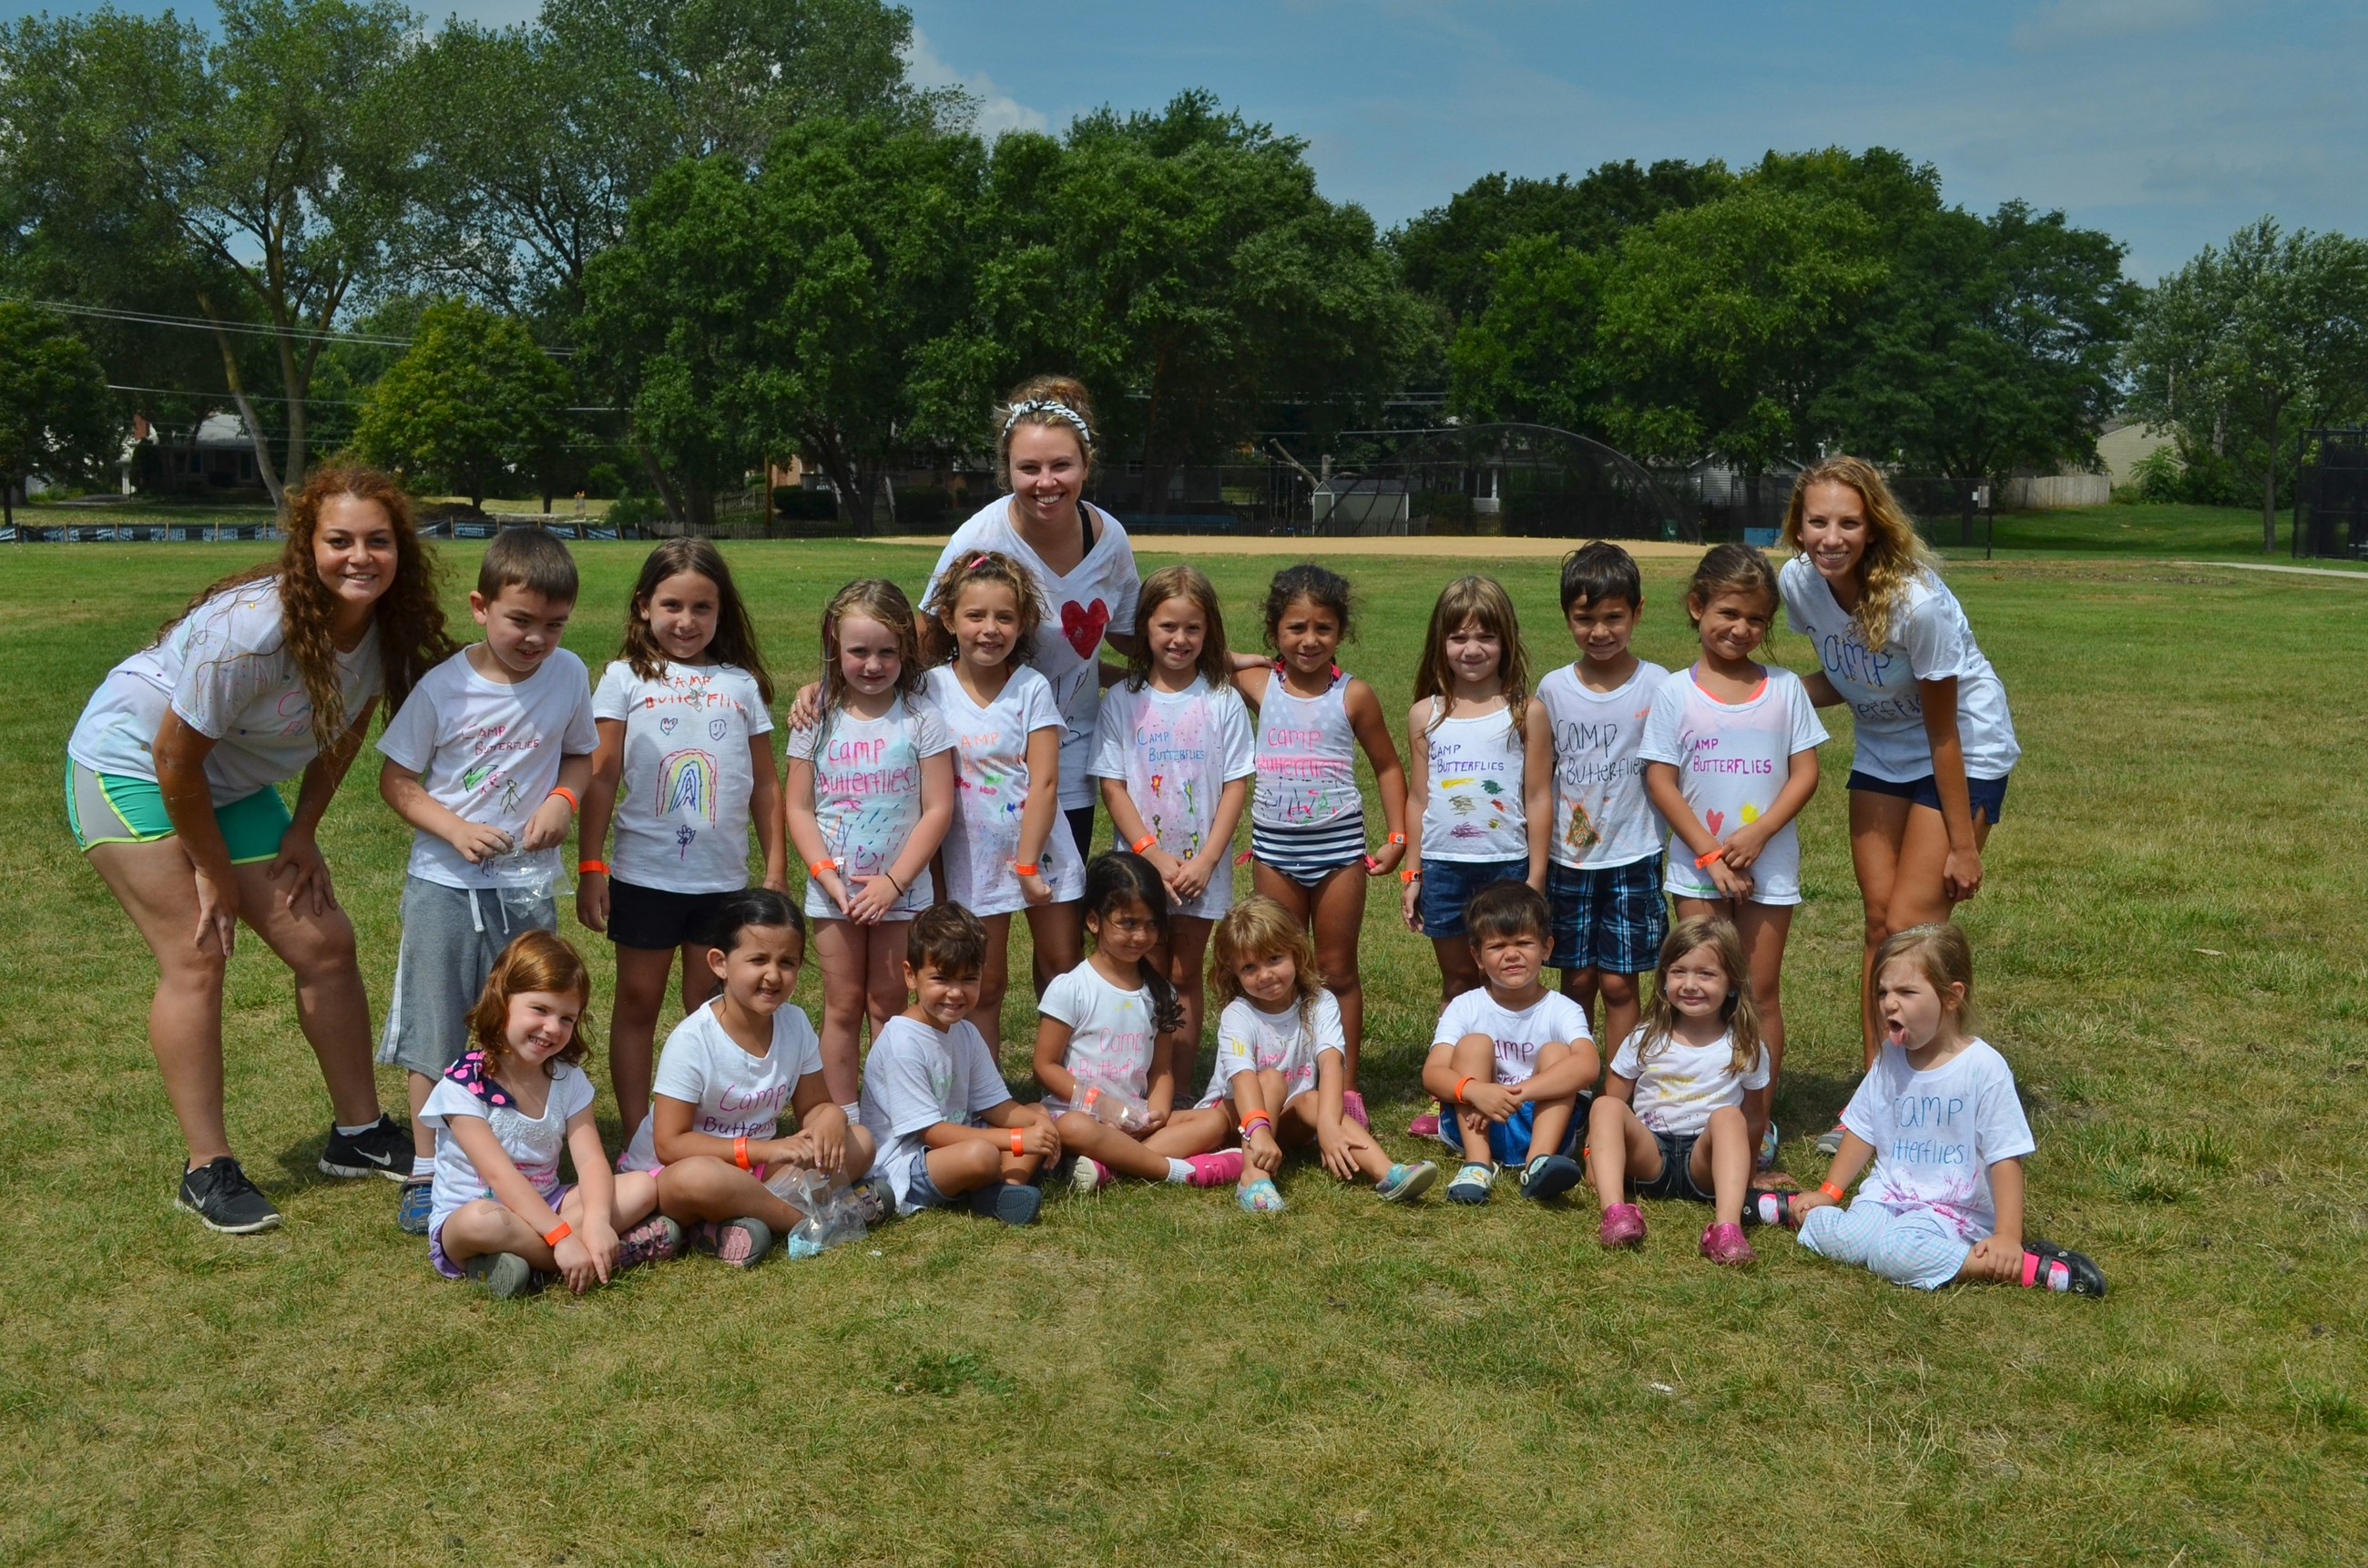 Day Camp Group Photo.JPG